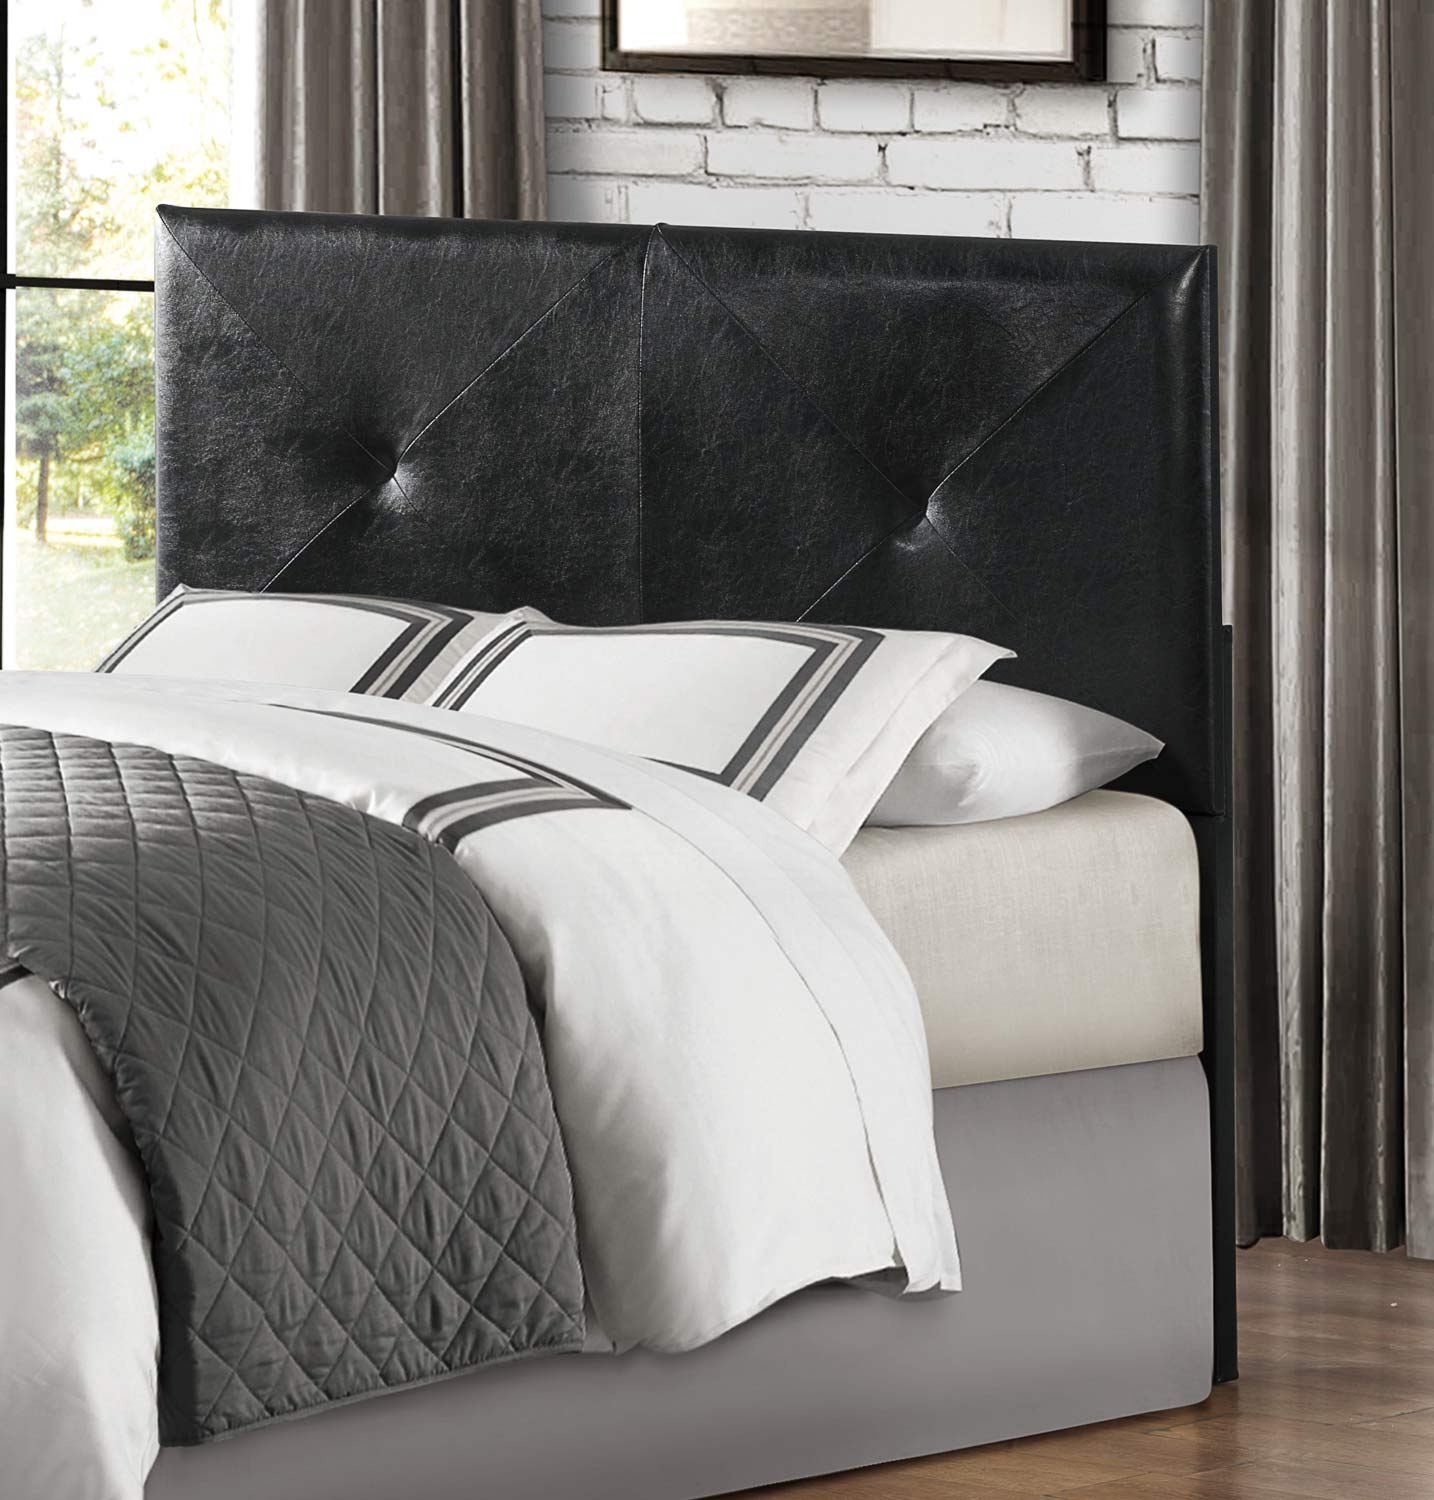 Homelegance Portrero Upholstered Headboard - Black Bi-Cast Vinyl